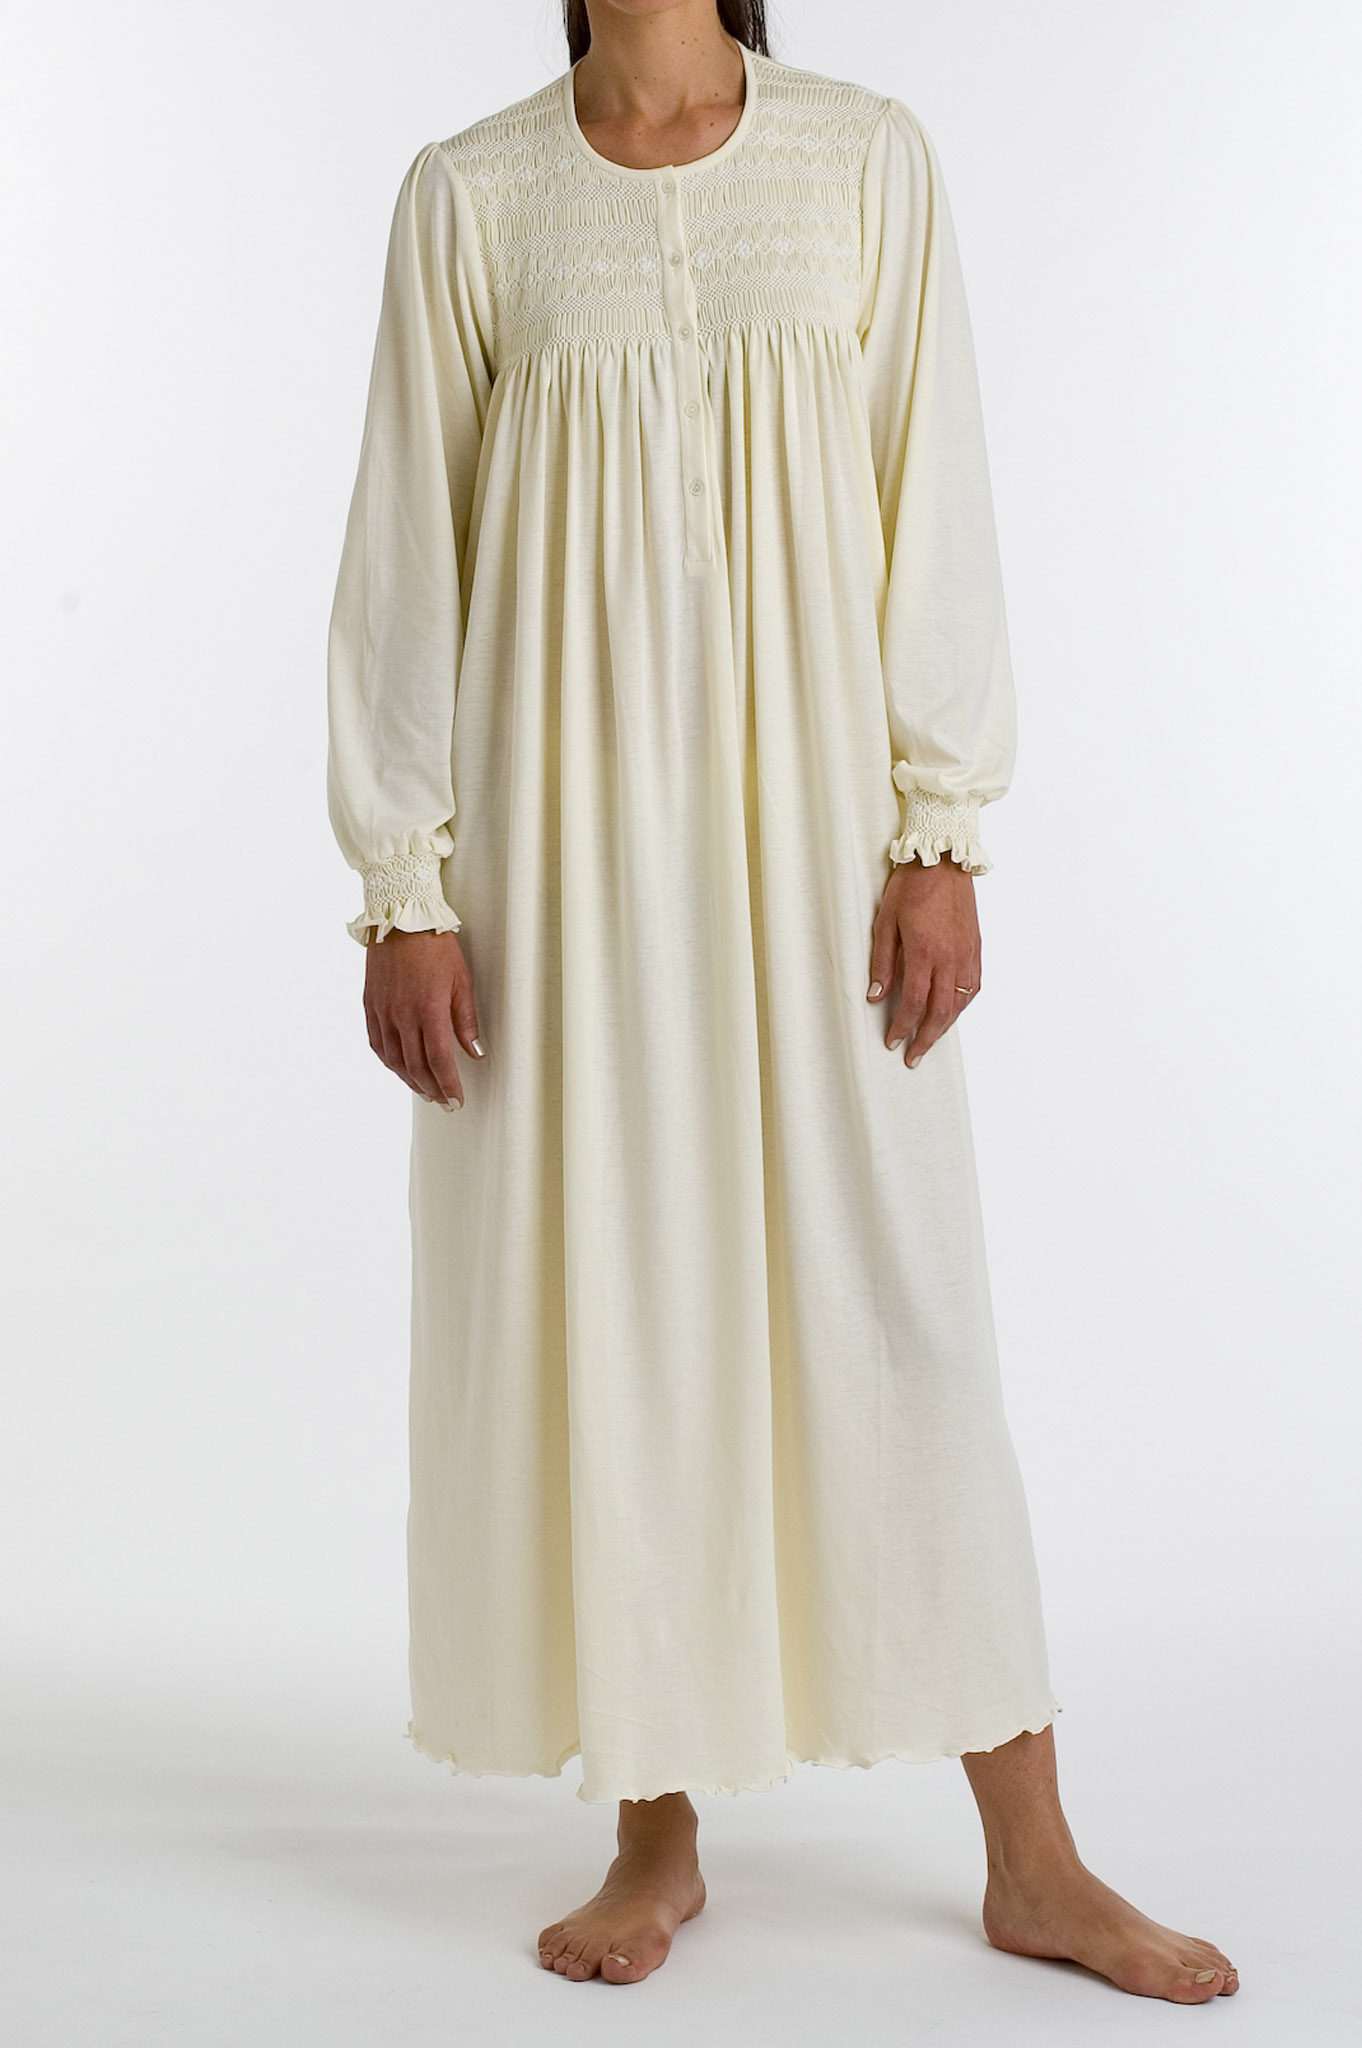 P.Jamas Isabel Embroidered Long Gown Yellow - L ISABEL